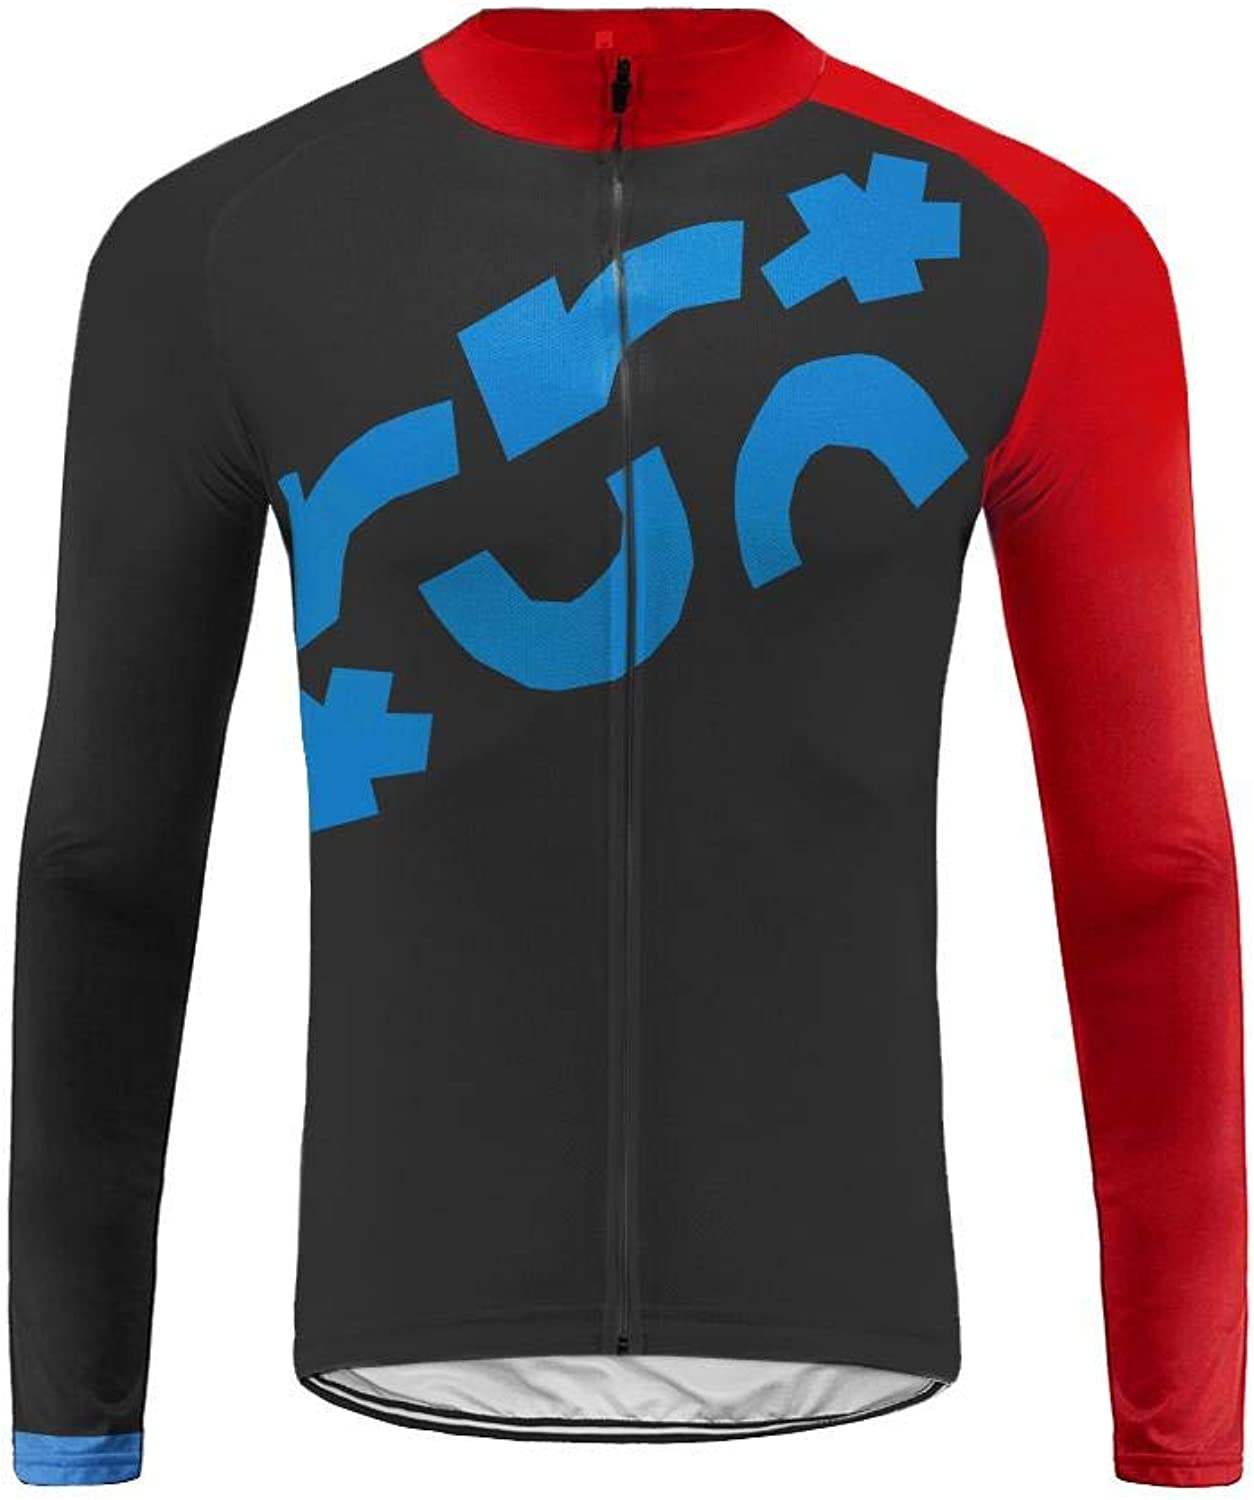 Uglyfrog Outdoor Sports Pro Team Men's Long Sleeve Cycling Jersey and Bib Pants Set for Winter R02